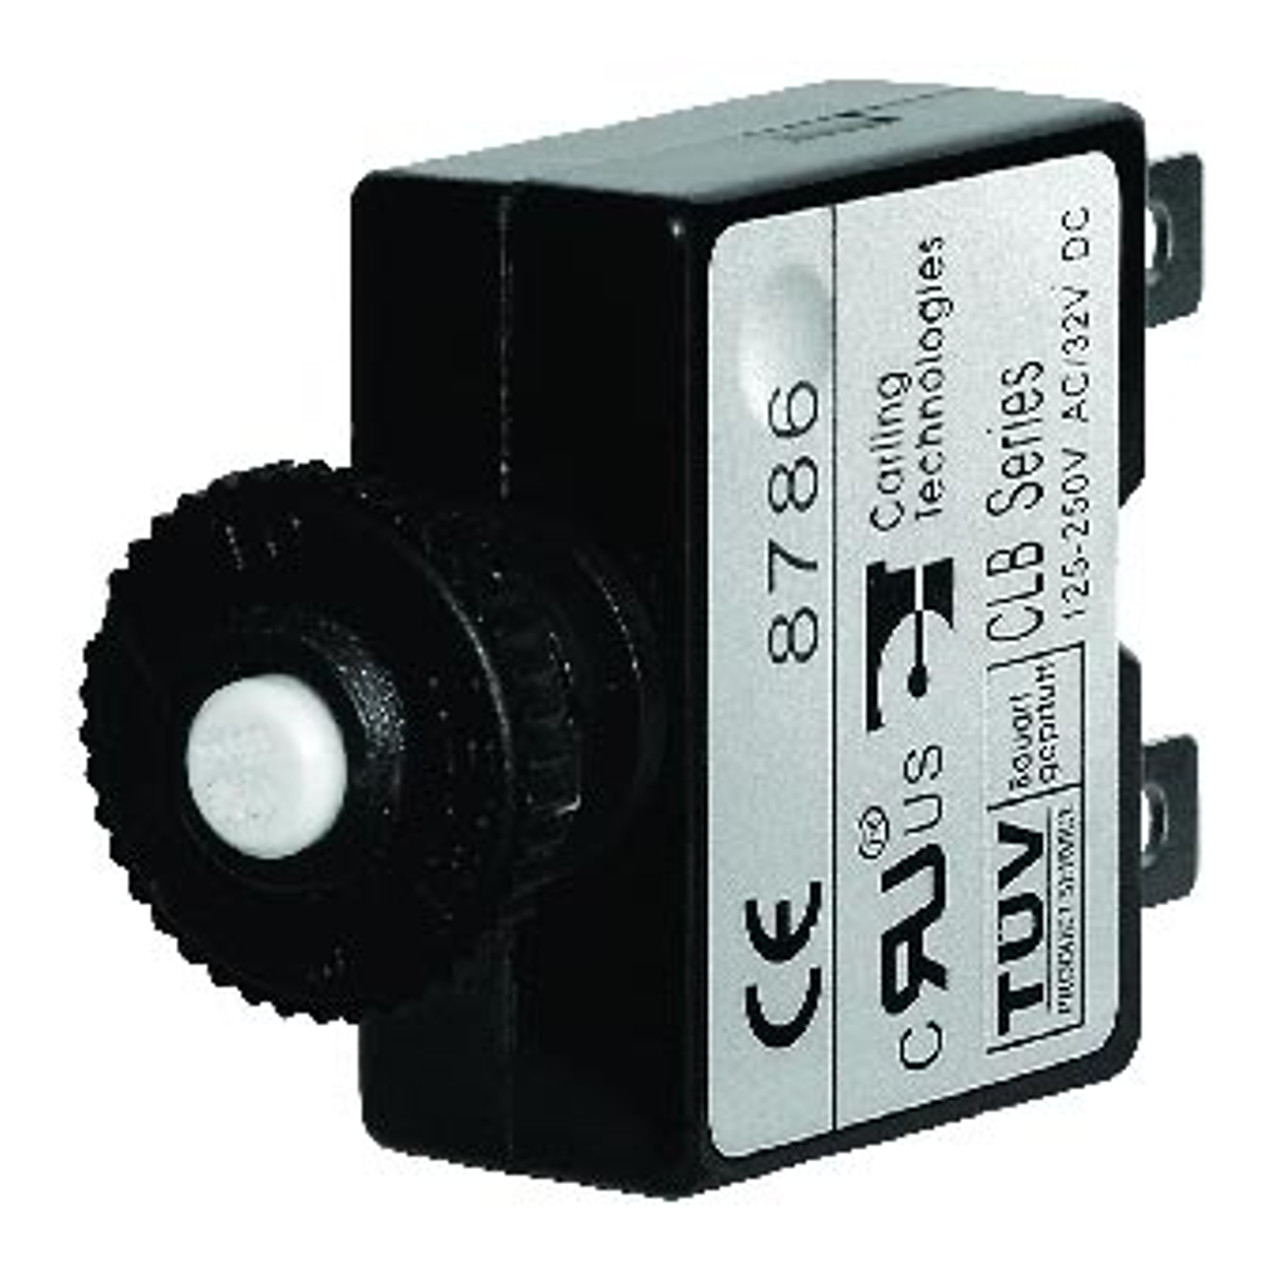 CIRCUIT BREAKER 10 AMP PUSH BUTTON QUICK CONNECT